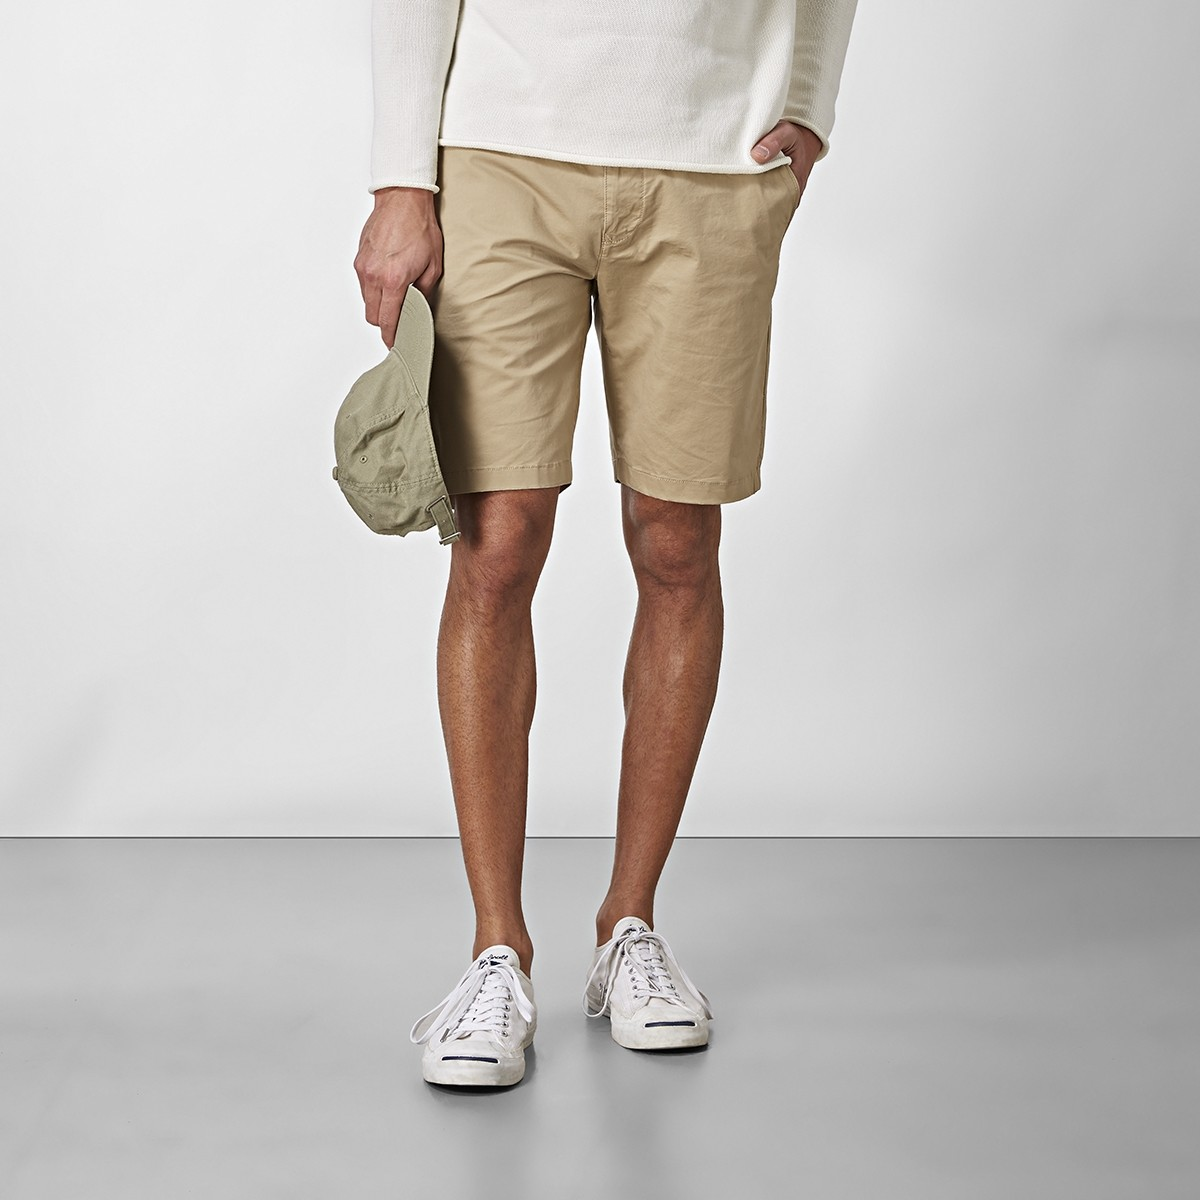 Bowery Chinos Shorts Beige | East West | Brothers.se